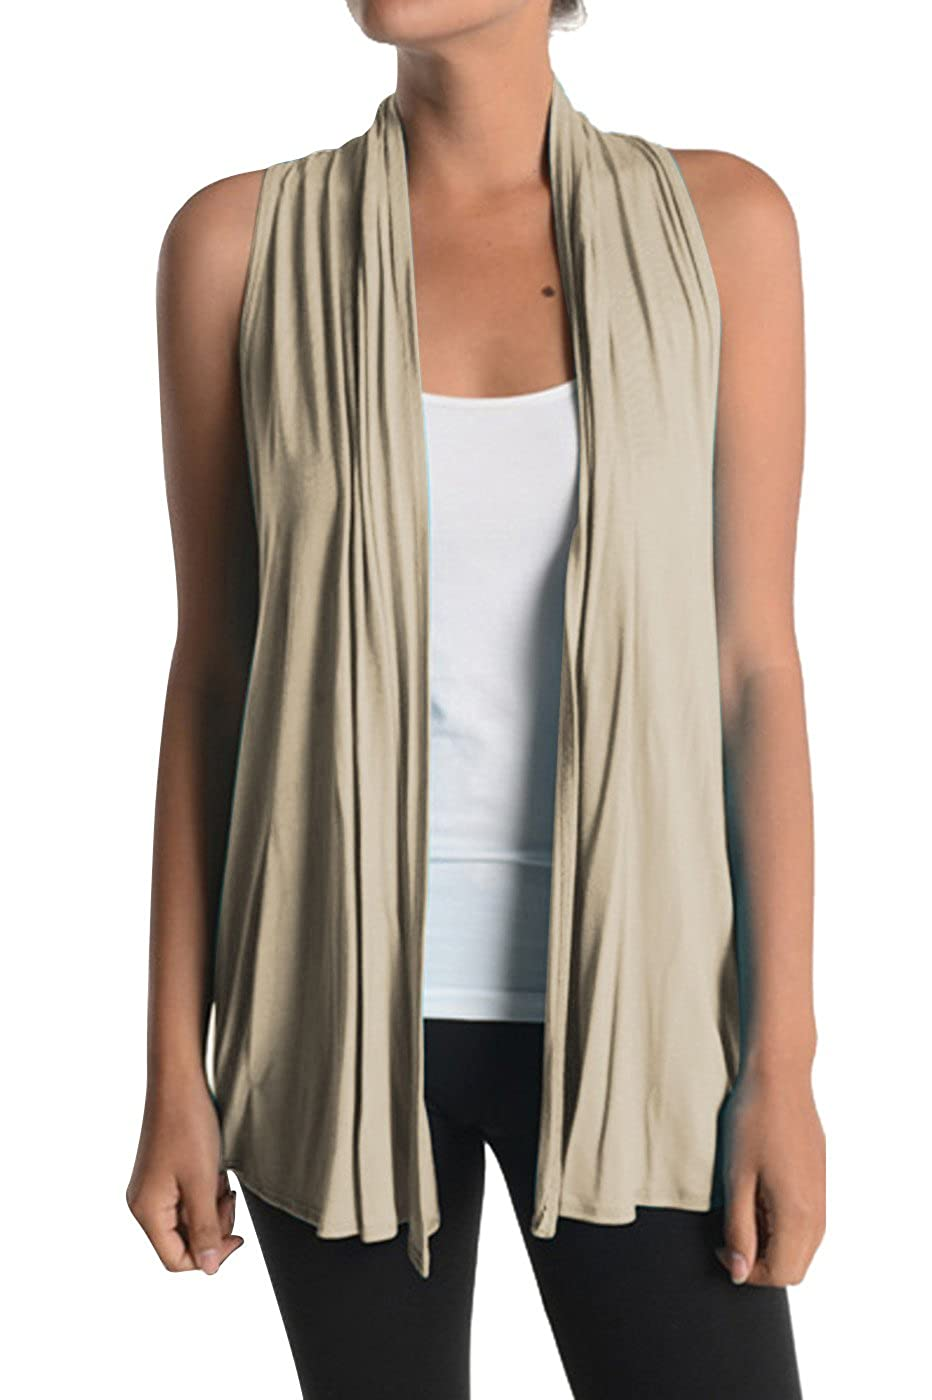 2LUV Women's Draped Open Front Racerback Jersey Knit Vest